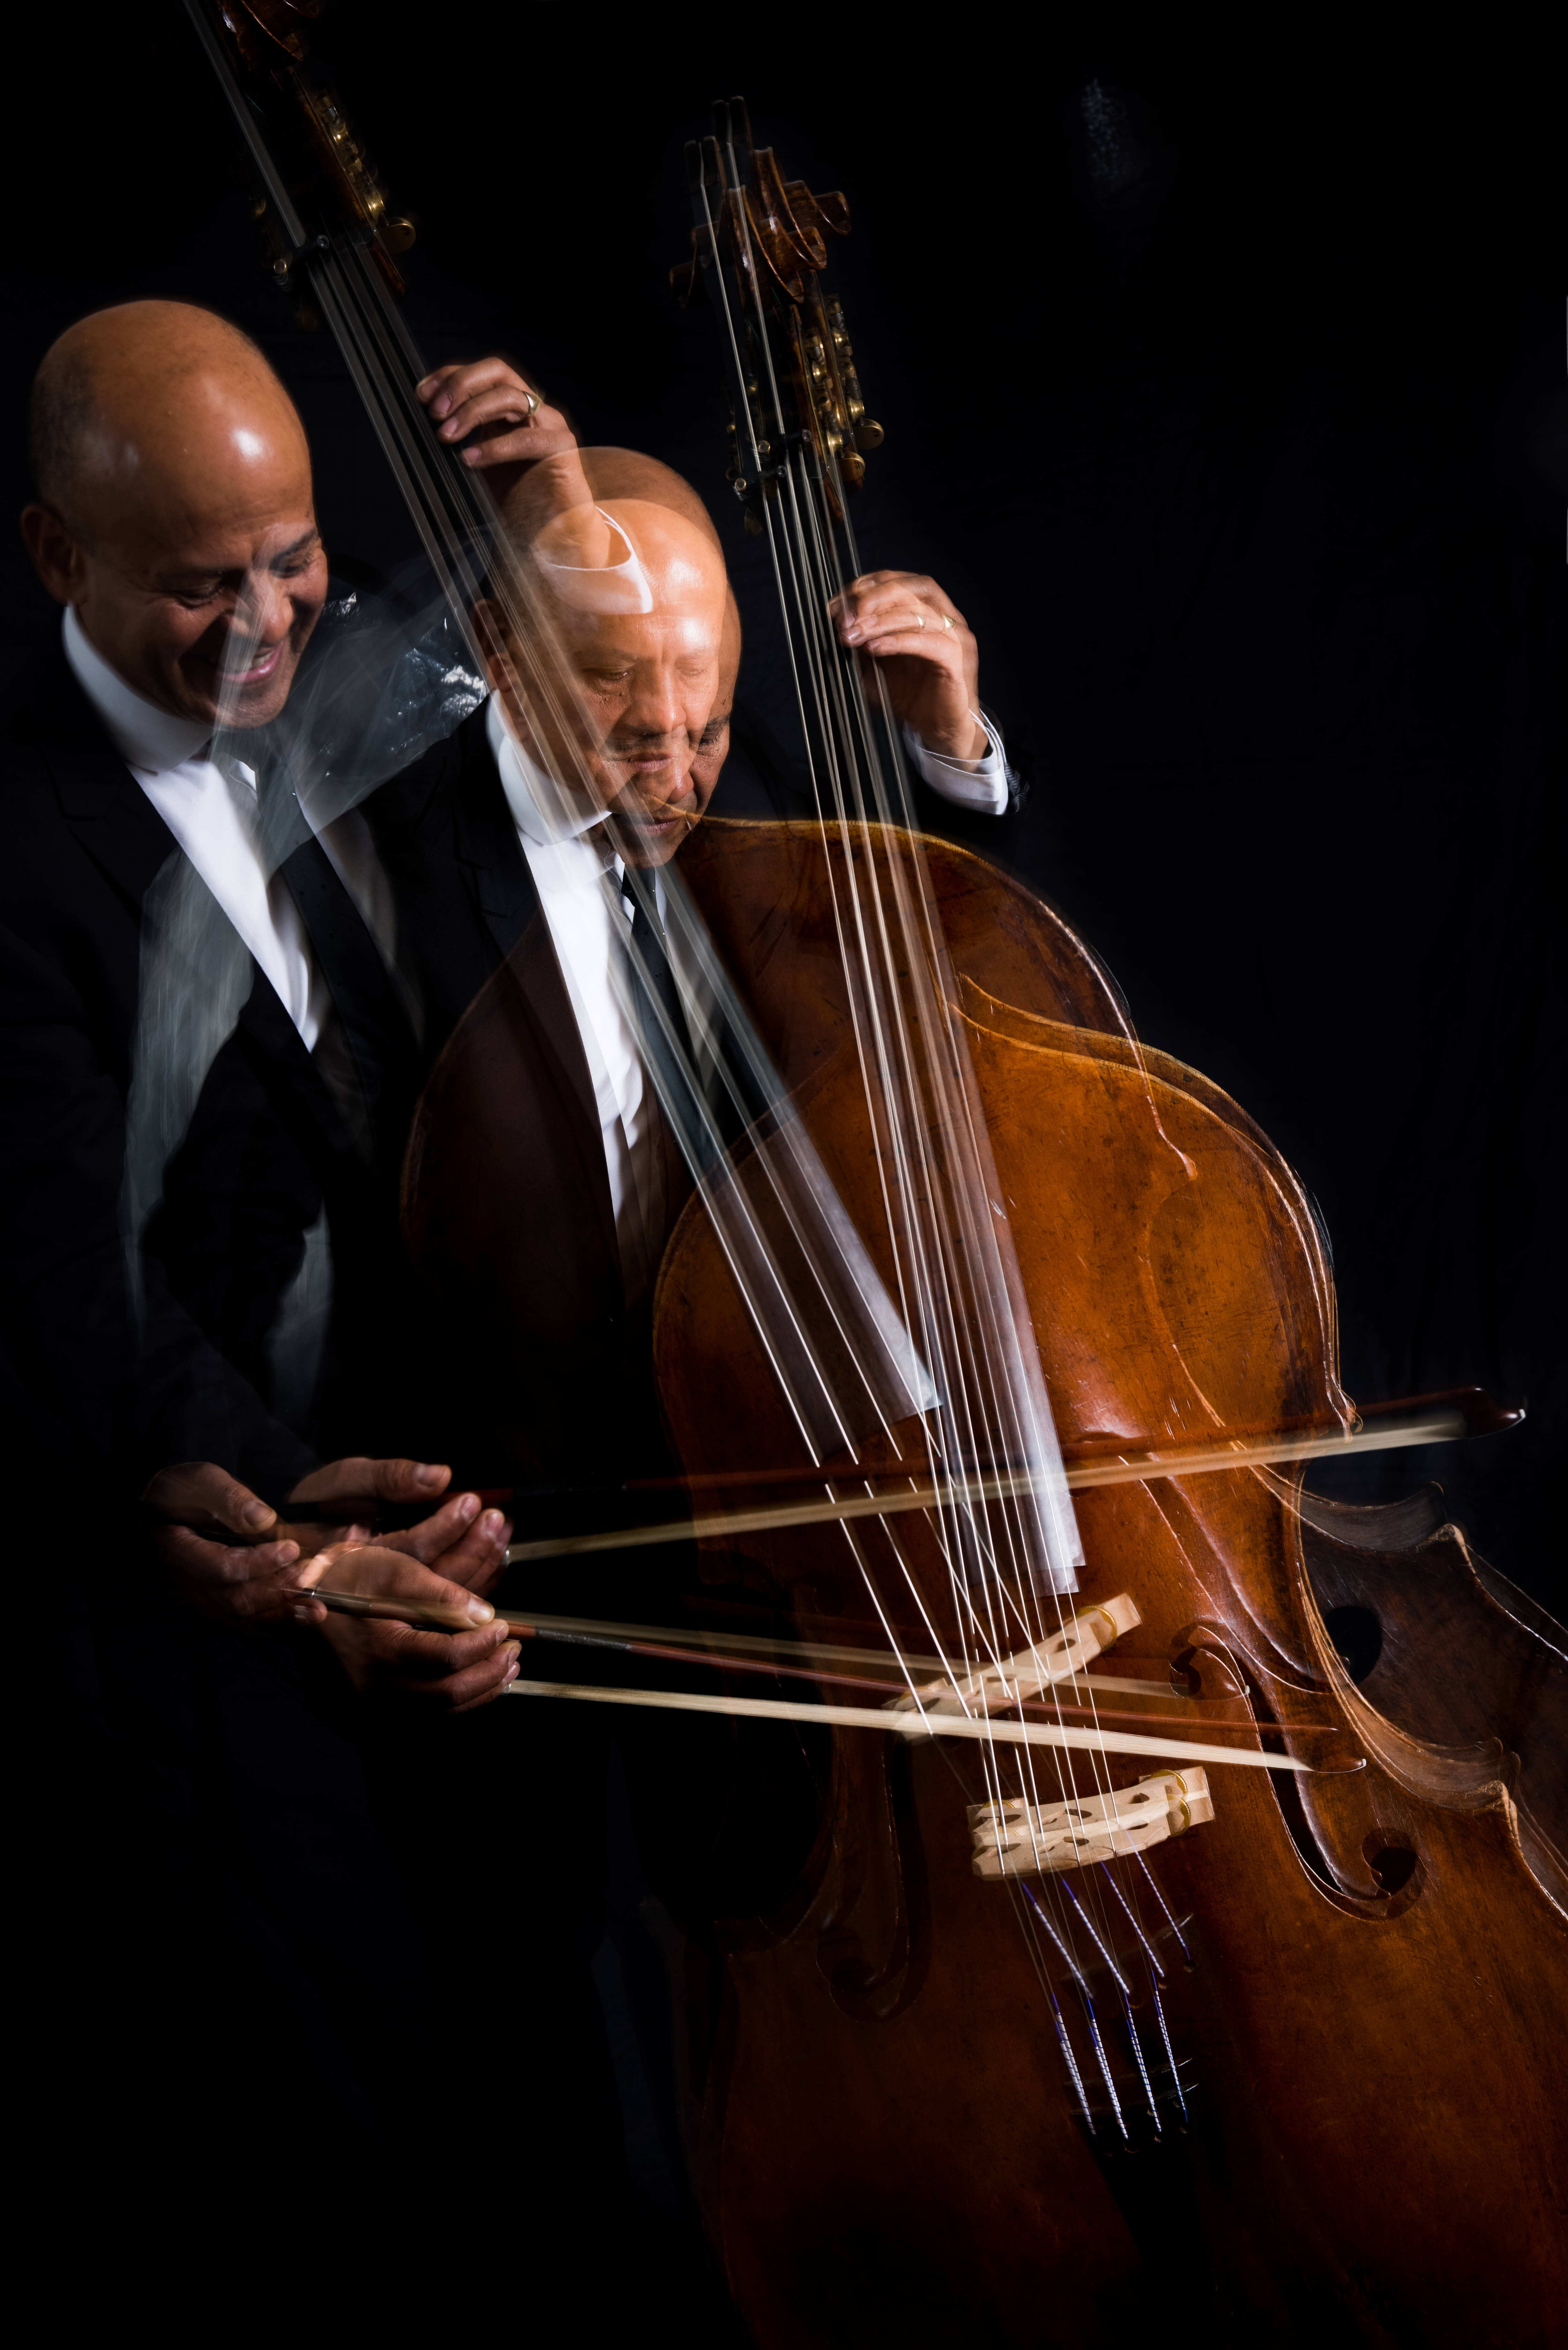 A mirror image of Leon Bosch playing a Double Bass in the dark.